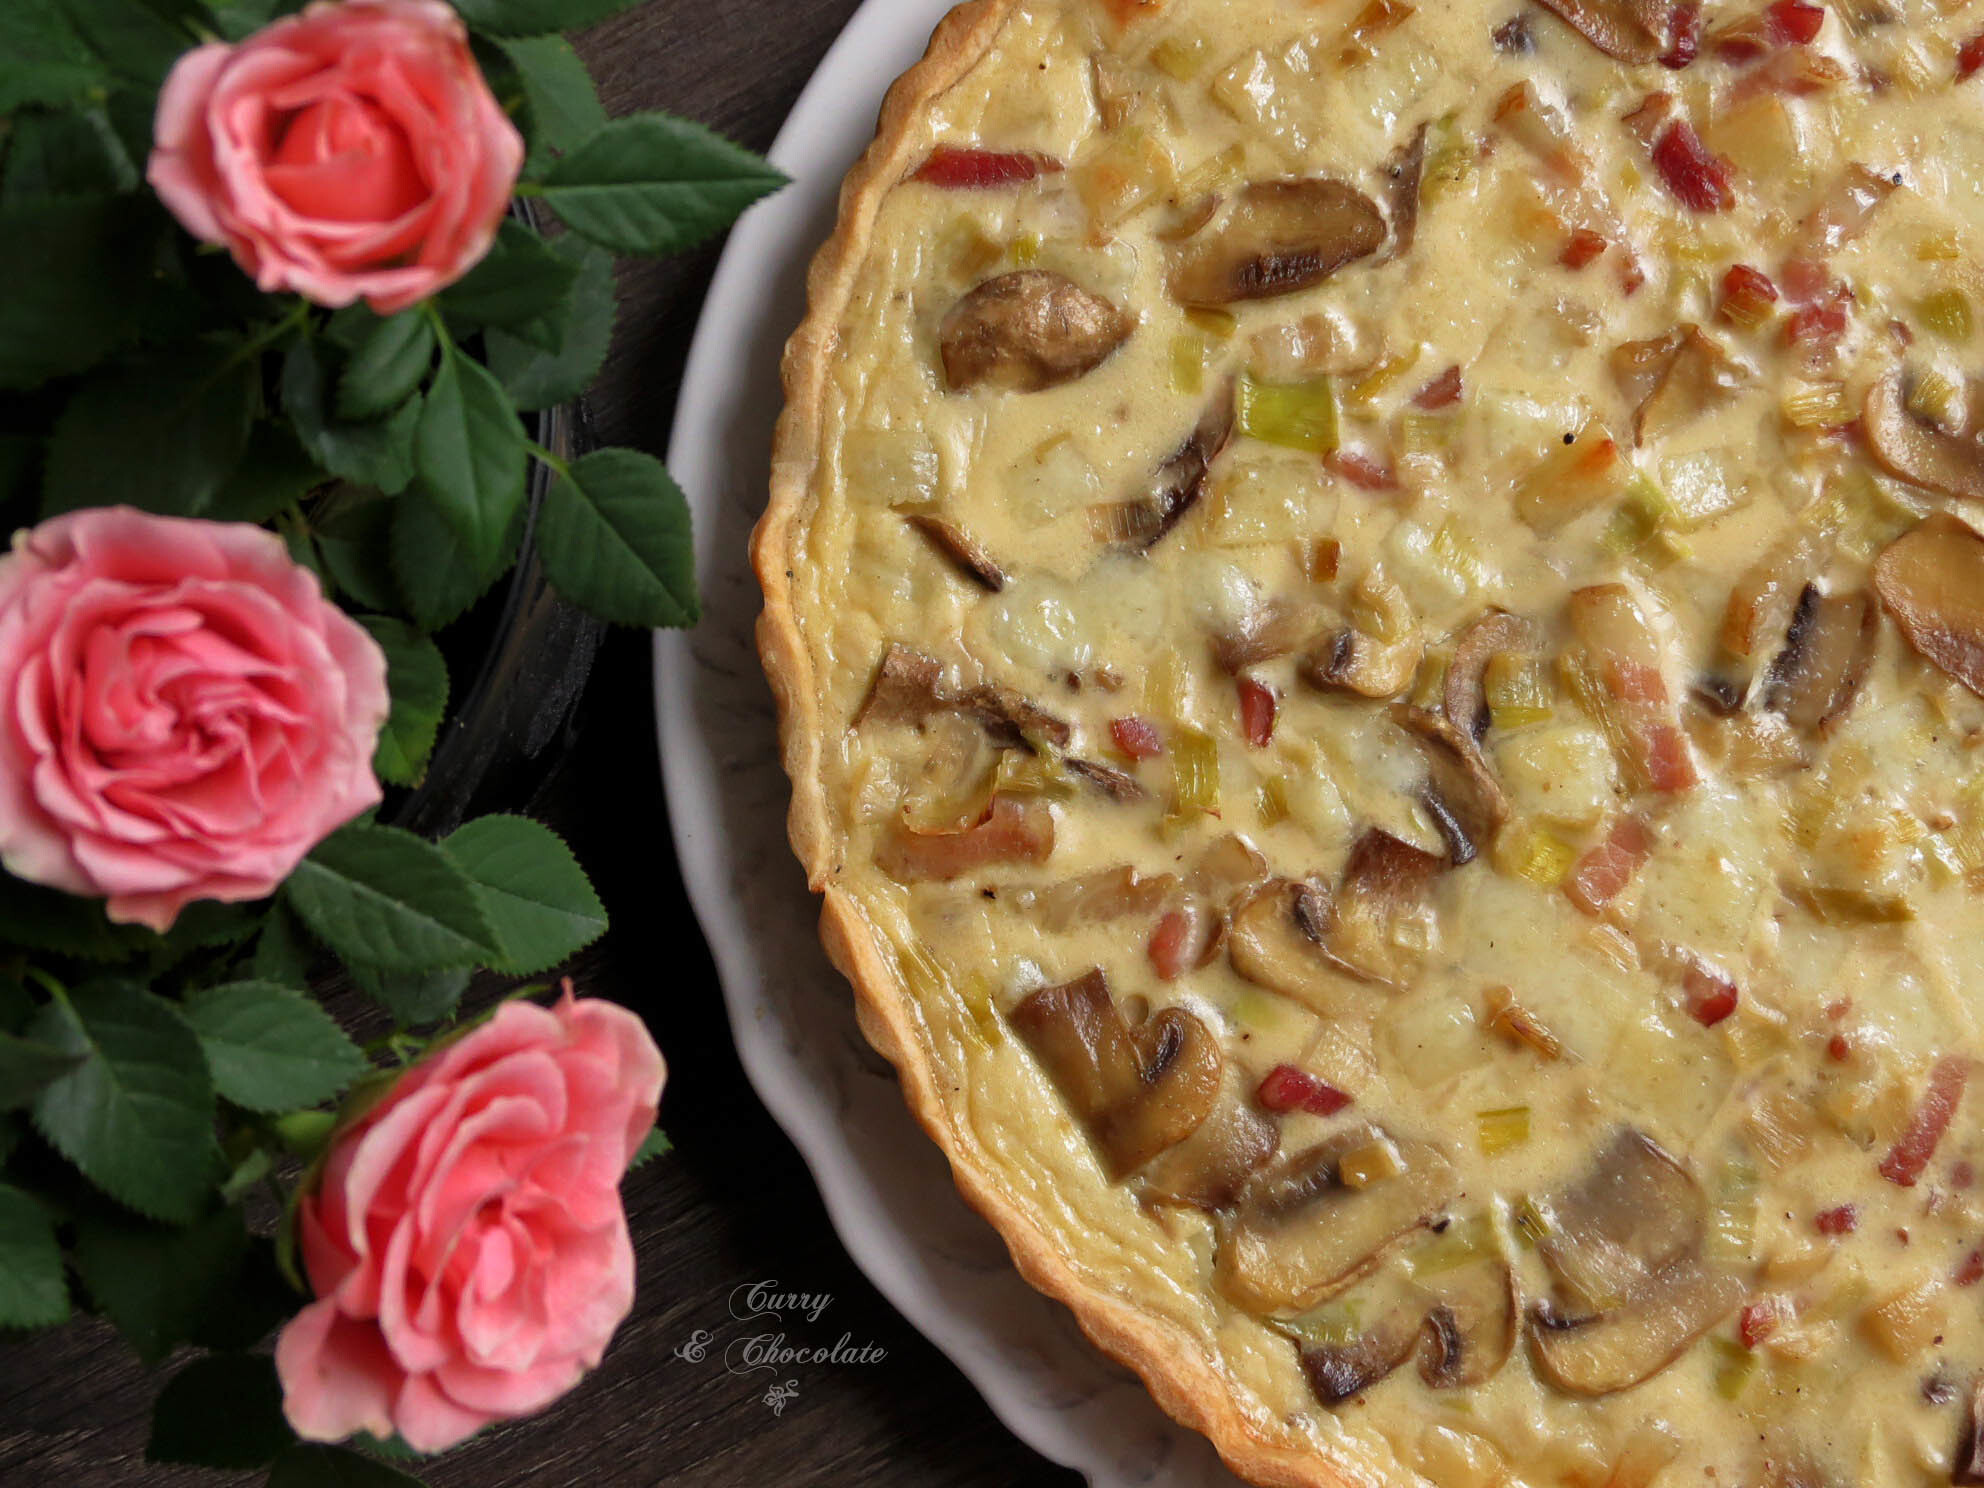 Pastel salado o quiche de champiñones, puerro y bacon – Quiche with mushrooms, leek and bacon